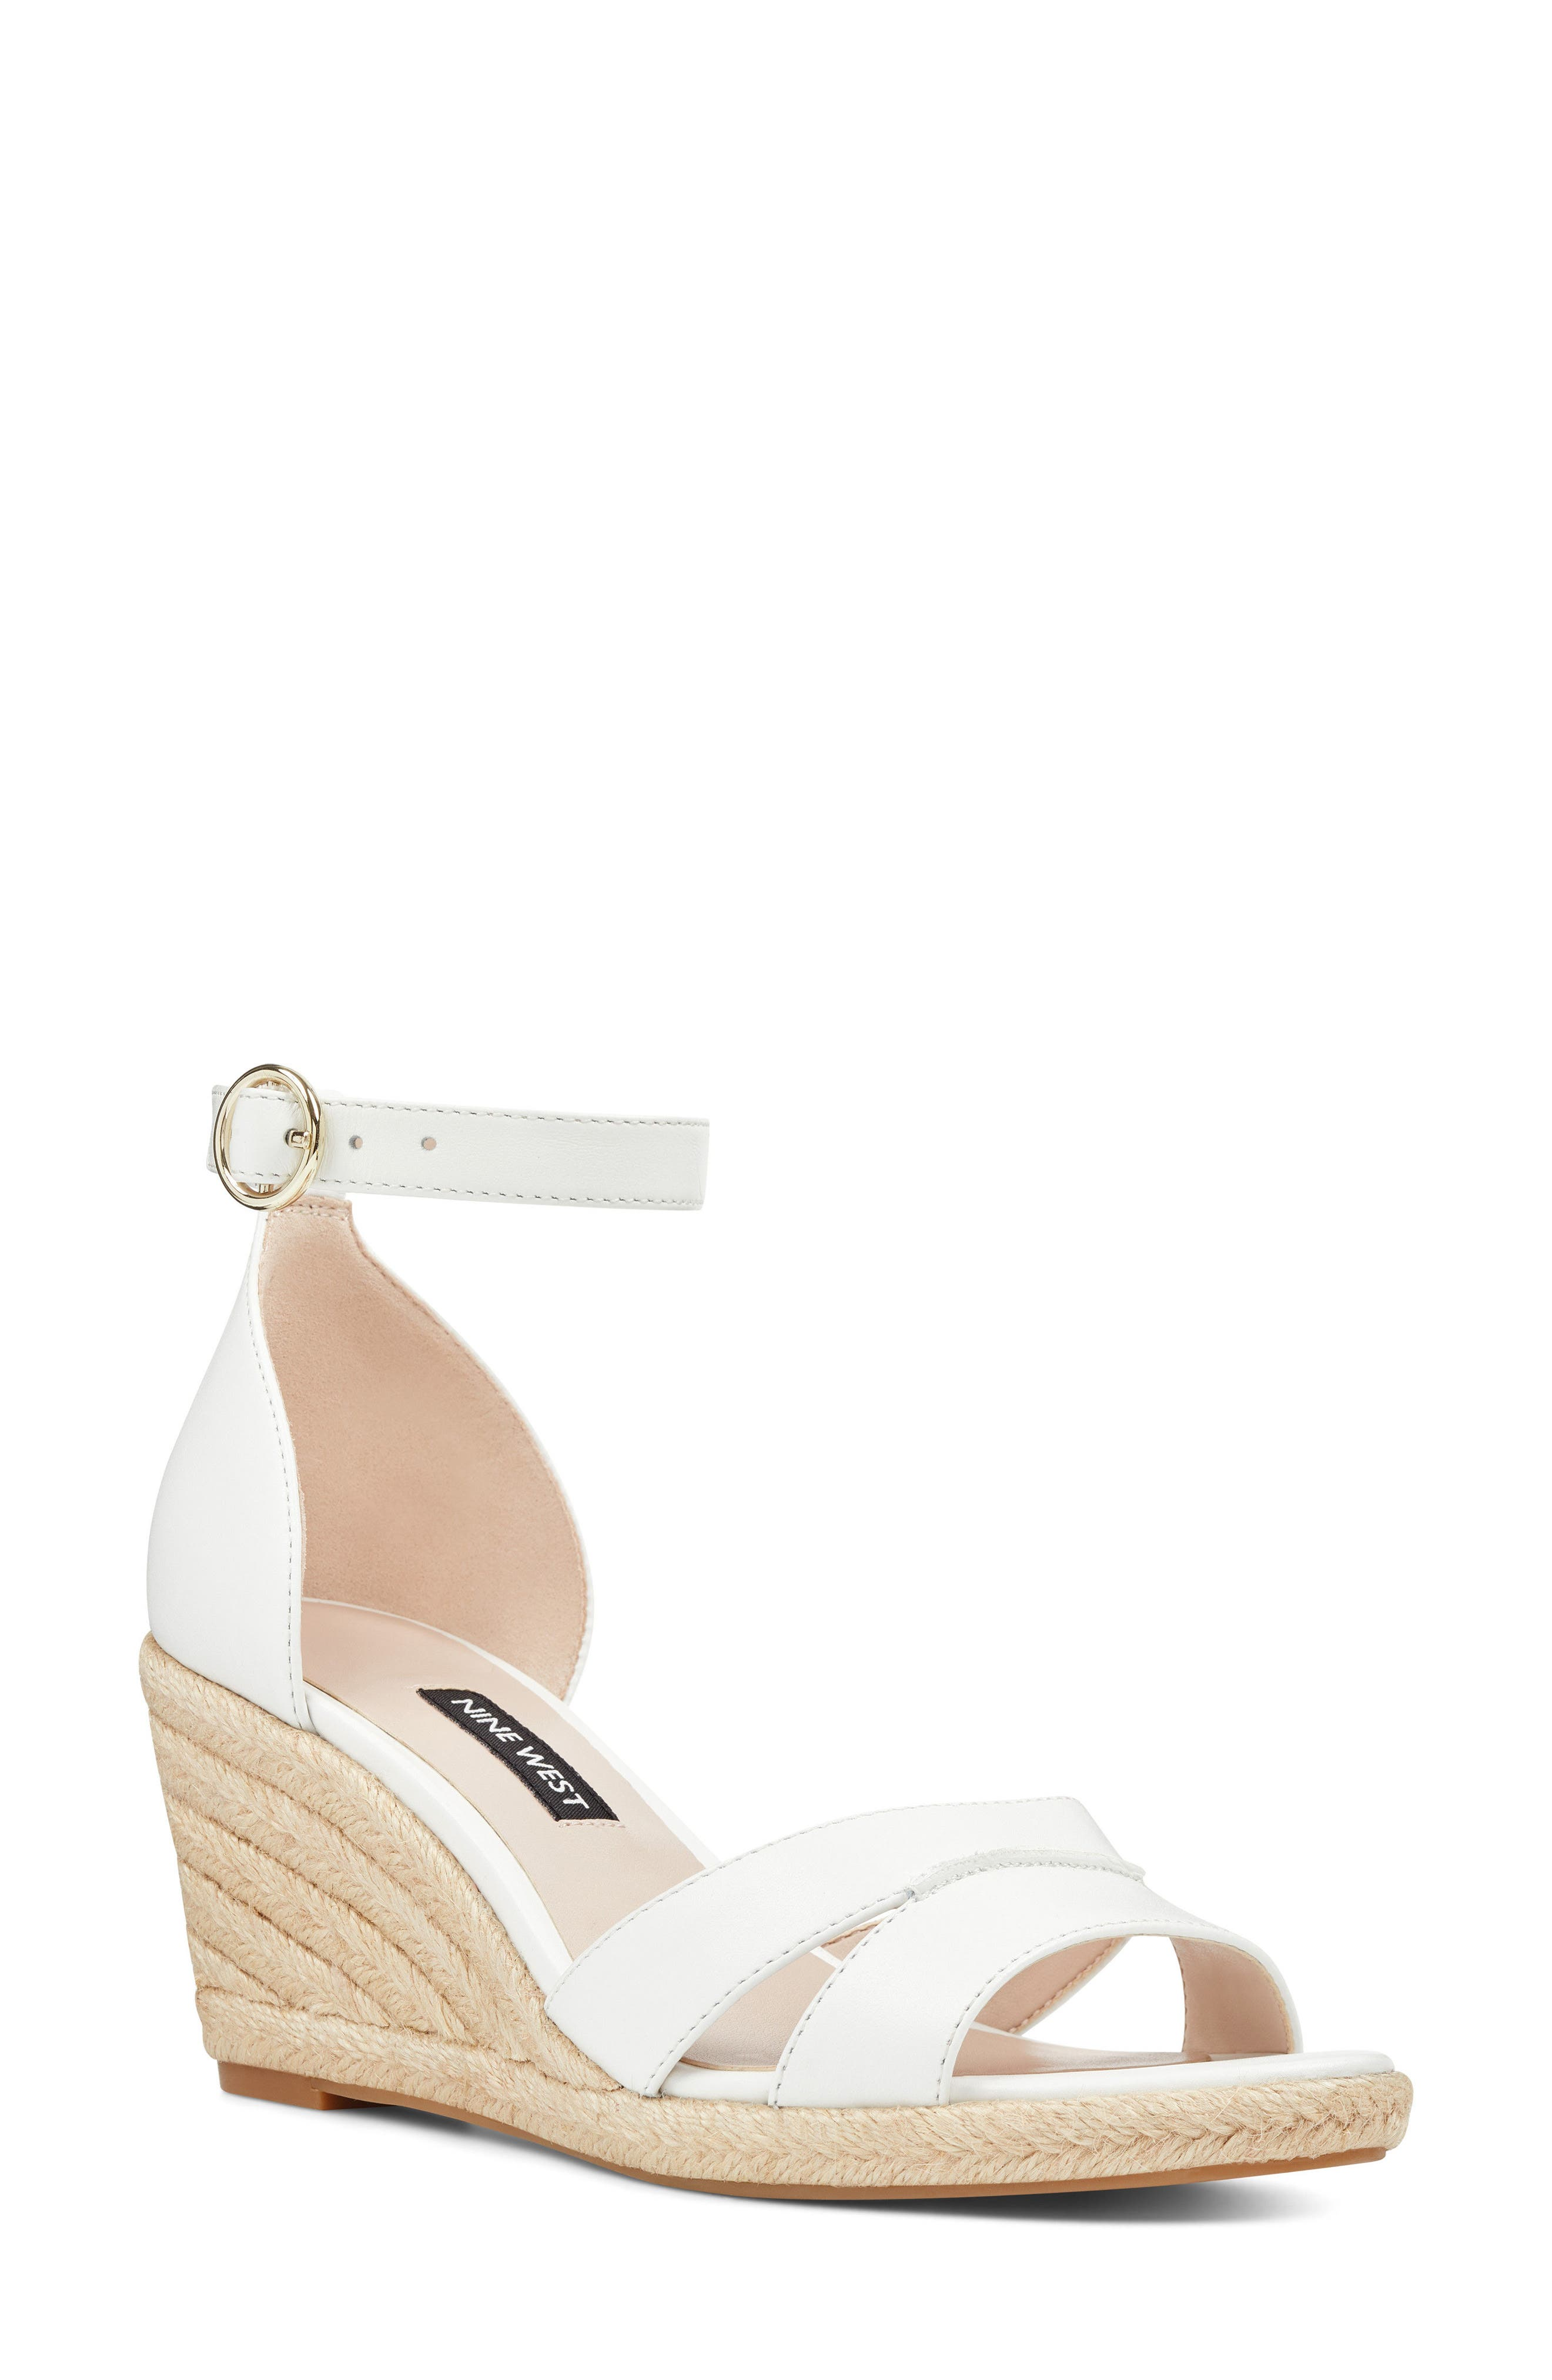 Jeranna Espadrille Wedge Sandal,                             Main thumbnail 1, color,                             WHITE LEATHER